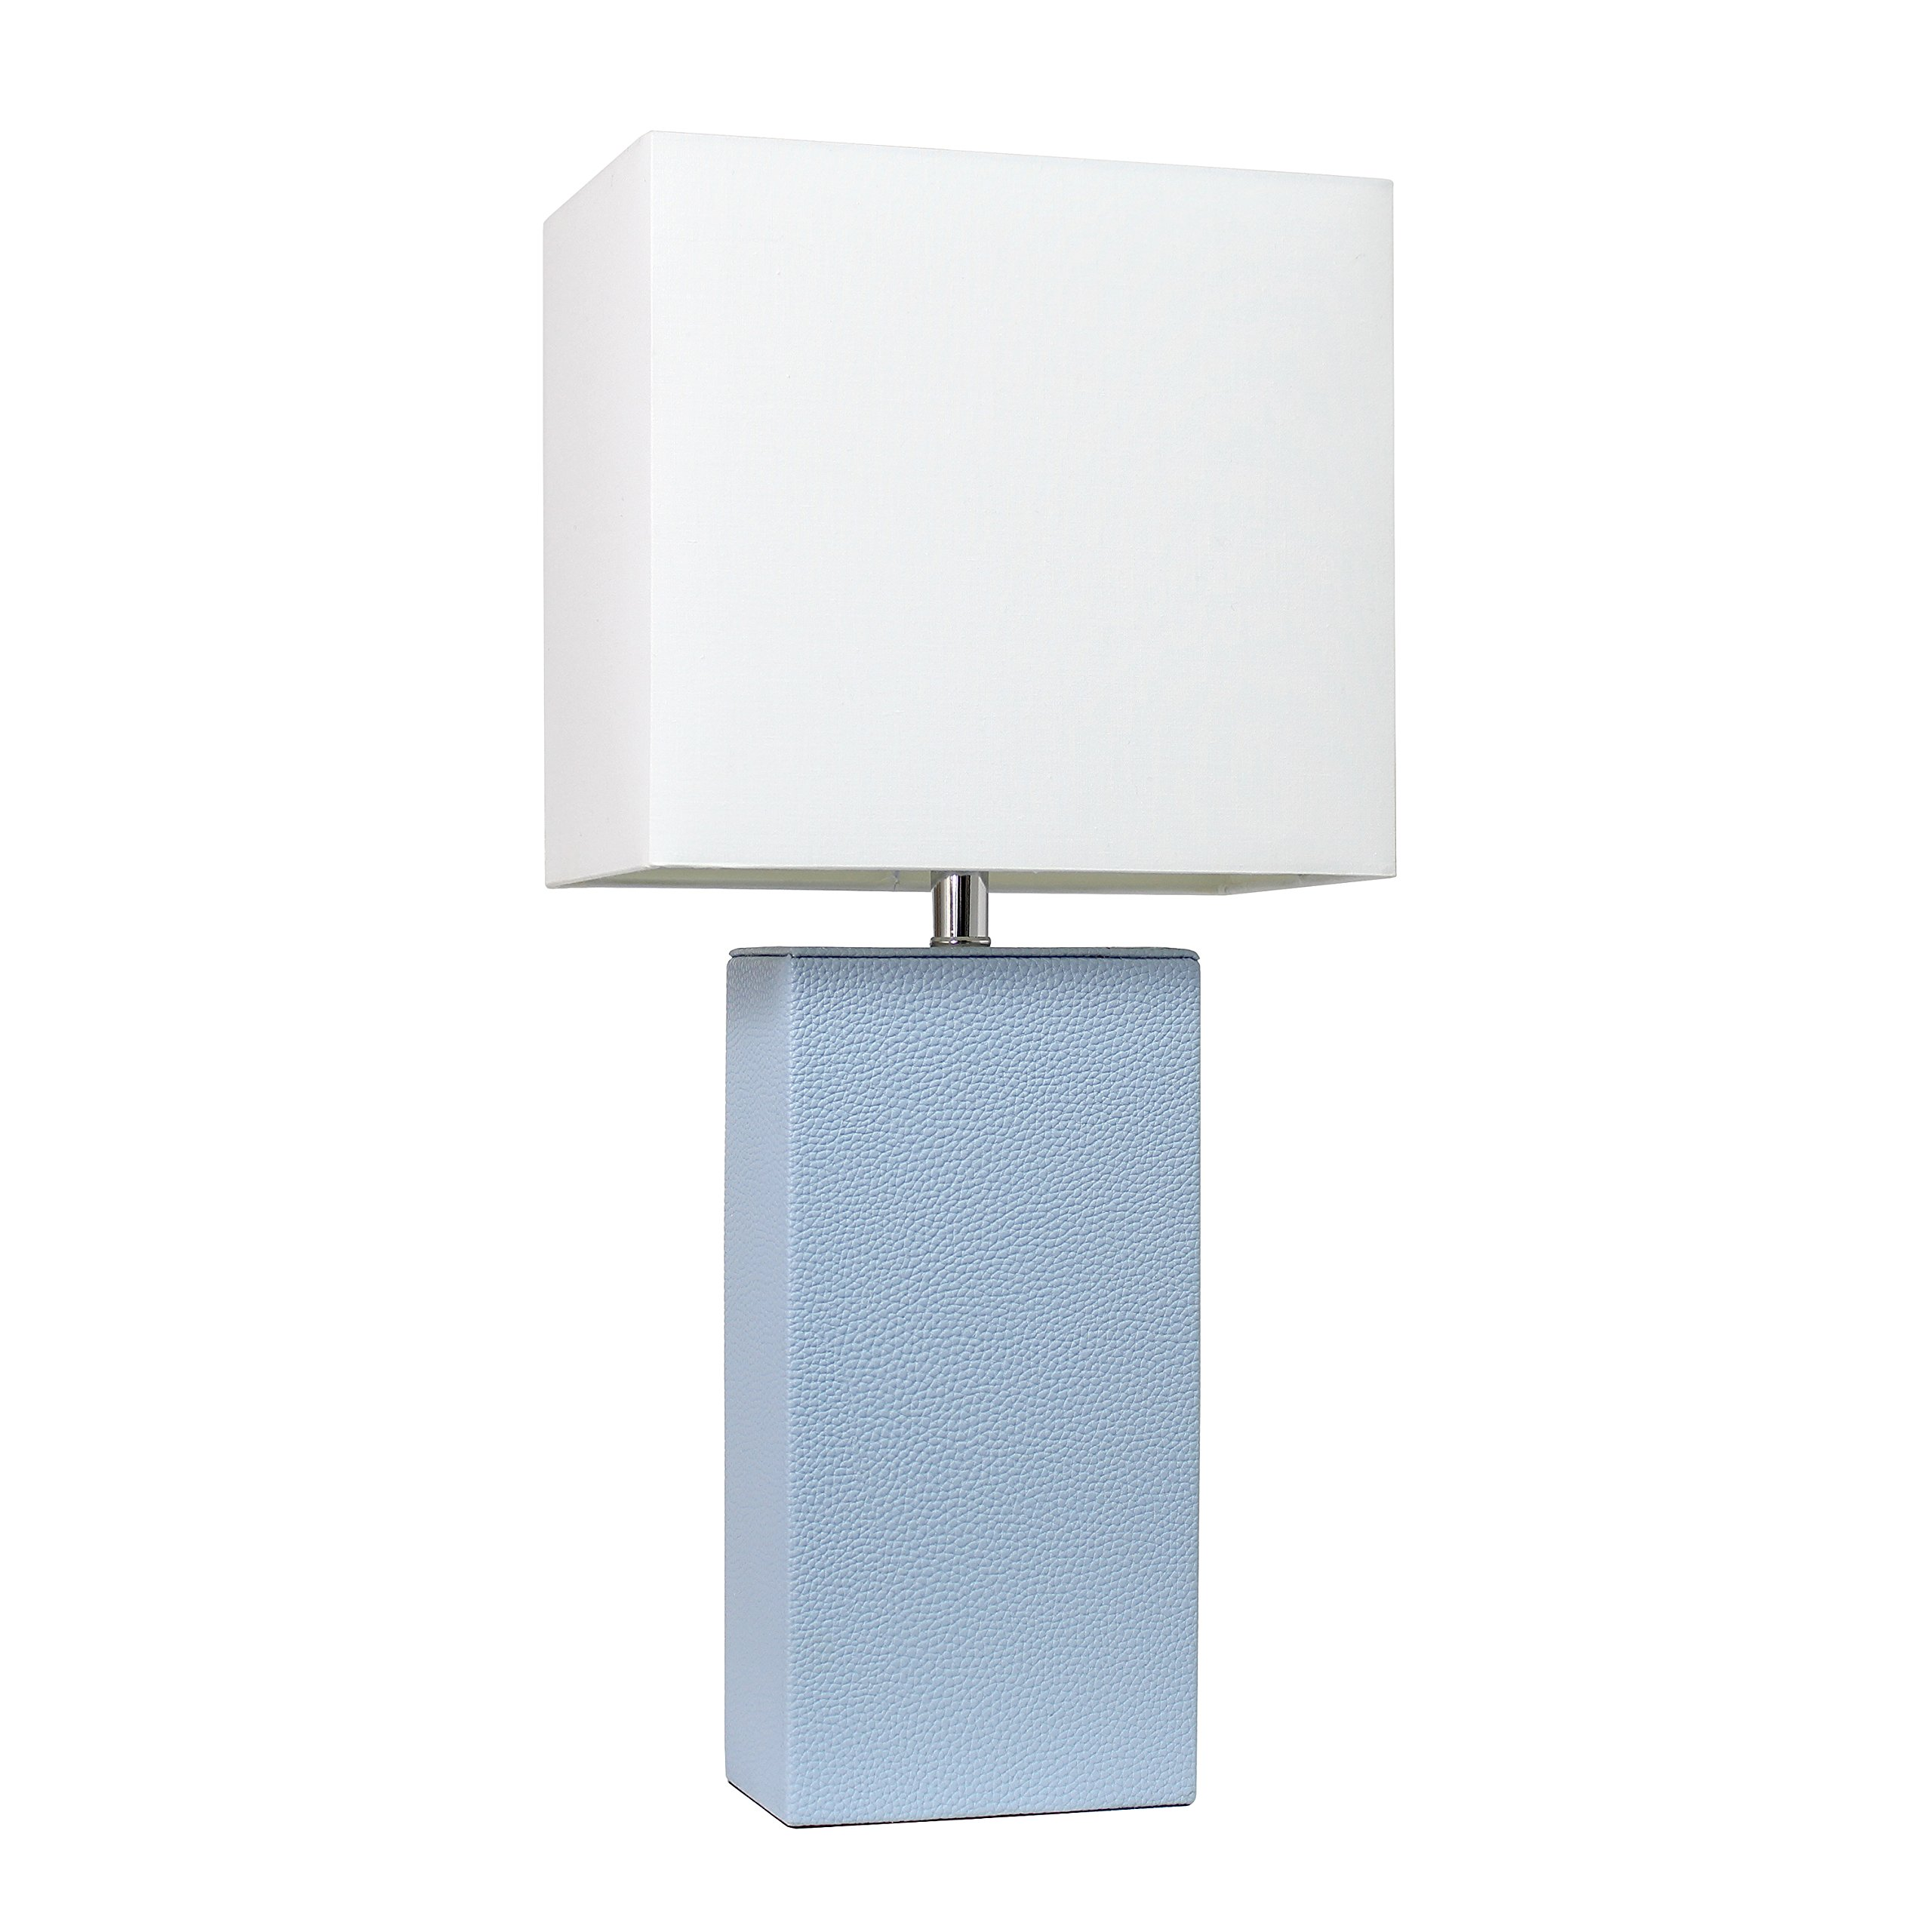 Elegant Designs LT1025-PWK Modern Leather Table Lamp with White Fabric Shade, Periwinkle